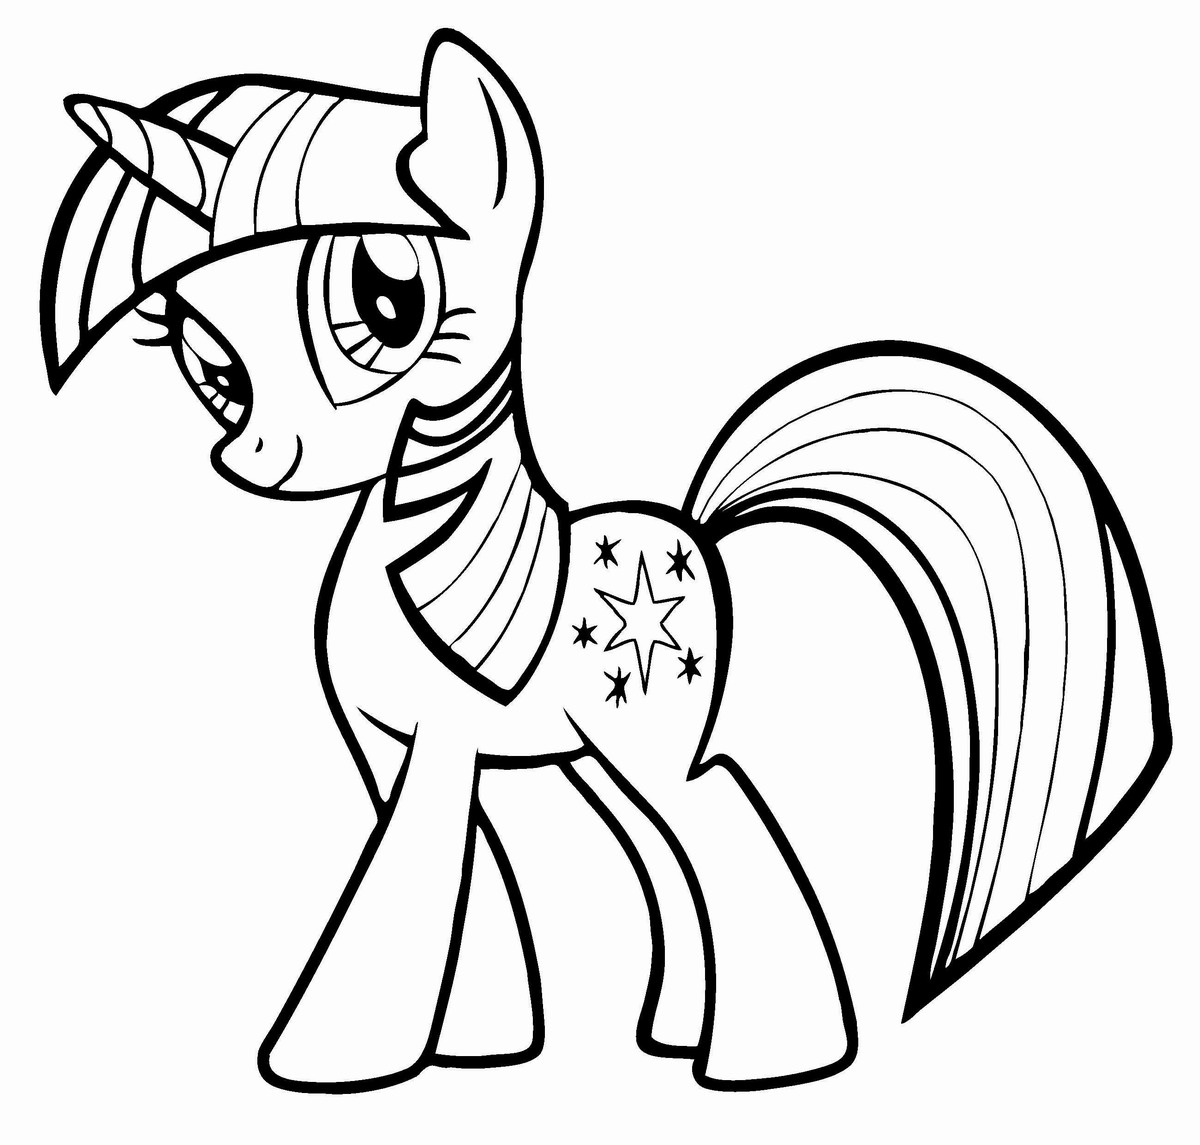 my little pony pictures fluttershy coloring pages best coloring pages for kids pictures little pony my